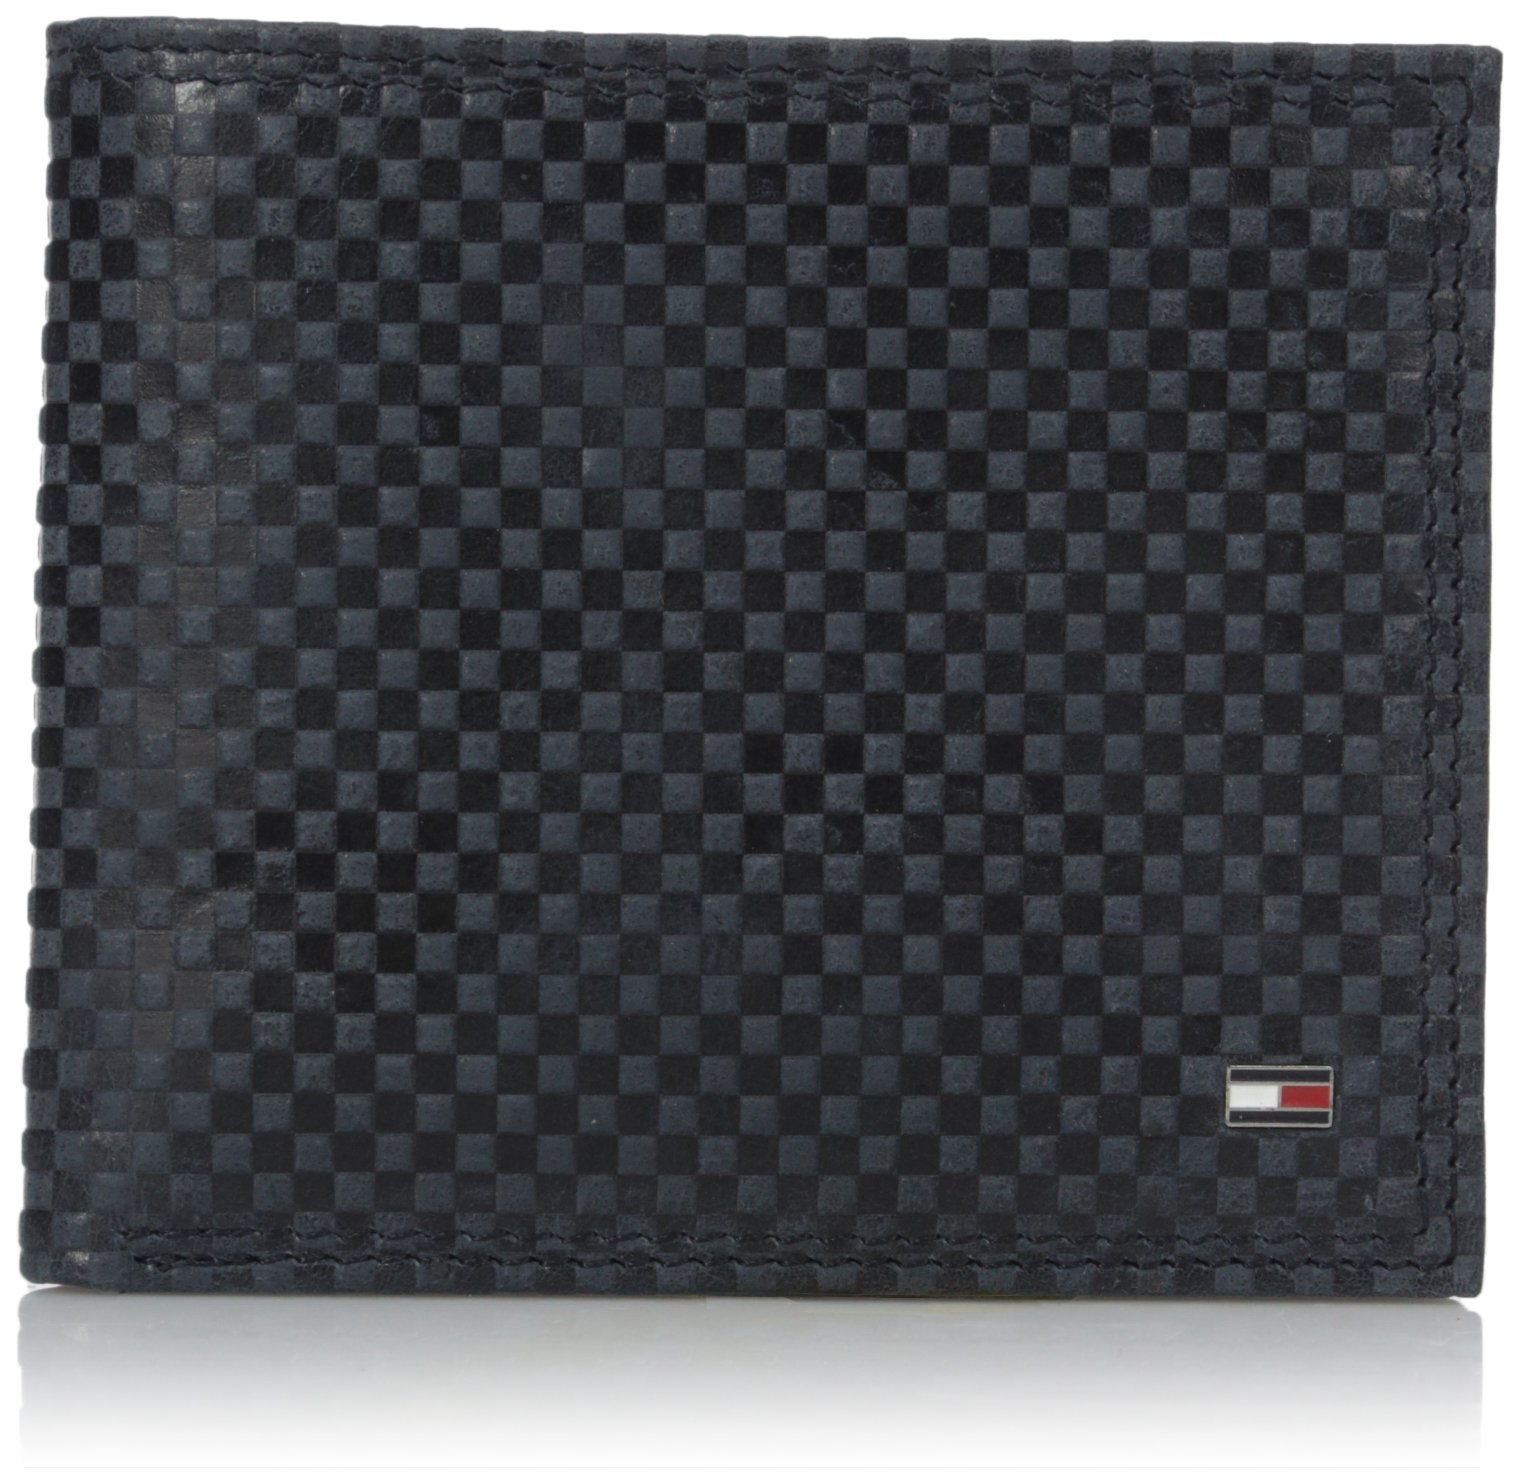 Tommy Hilfiger Men's Bifold Wallet - Leather Slim Thin Classic Billfold for Men with Credit Card Slots, Navy with Zipper, One Size by Tommy Hilfiger